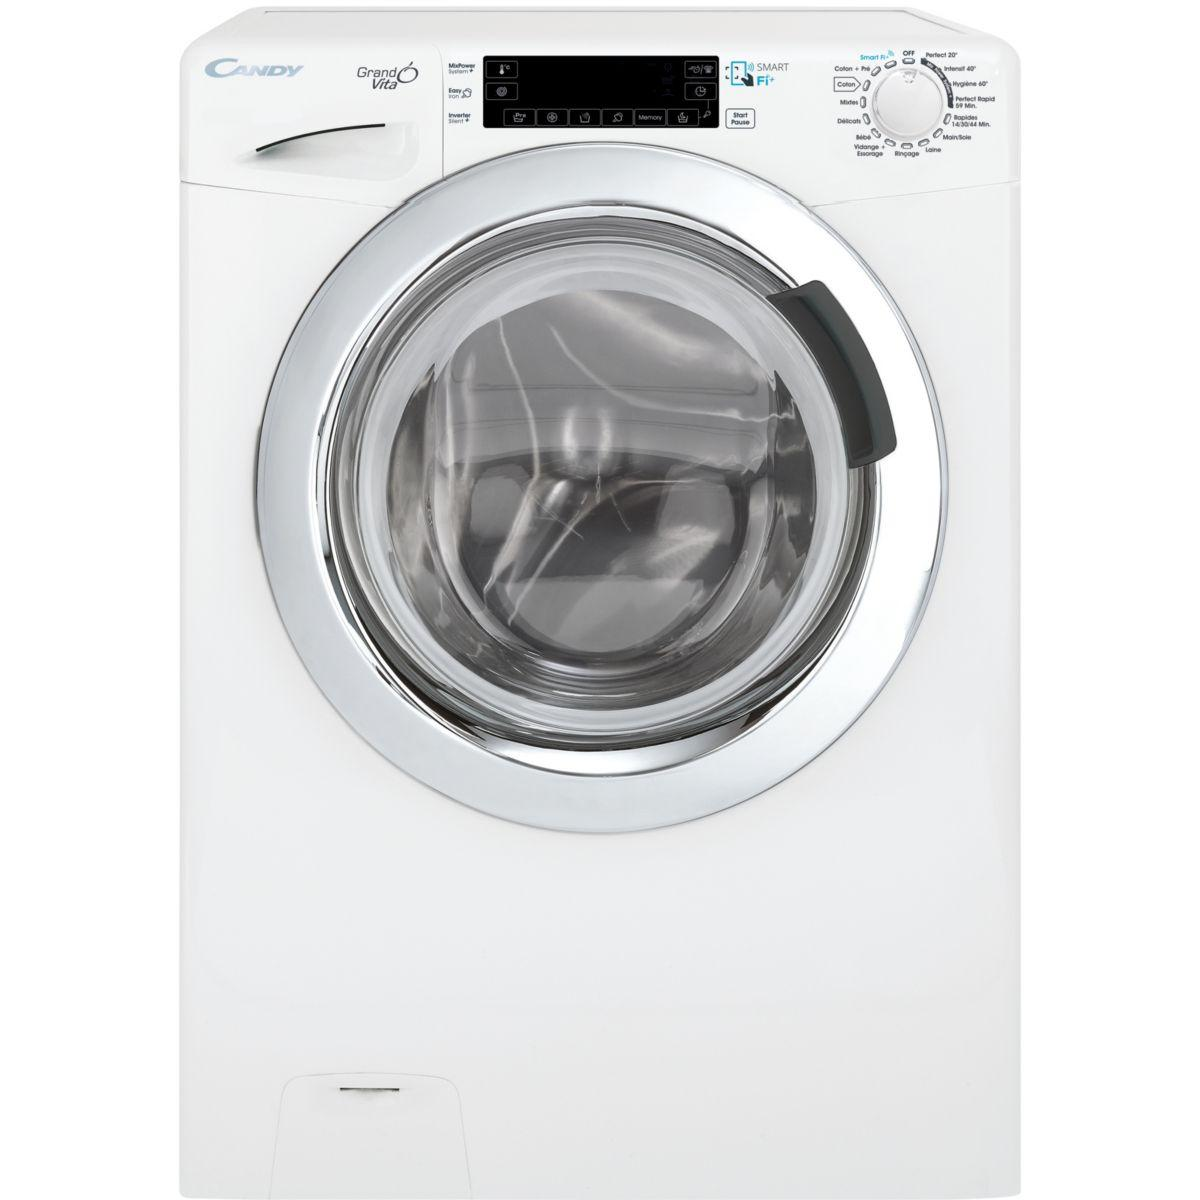 Lave-linge Frontal CANDY GVF 1411 LWHC5/1-47